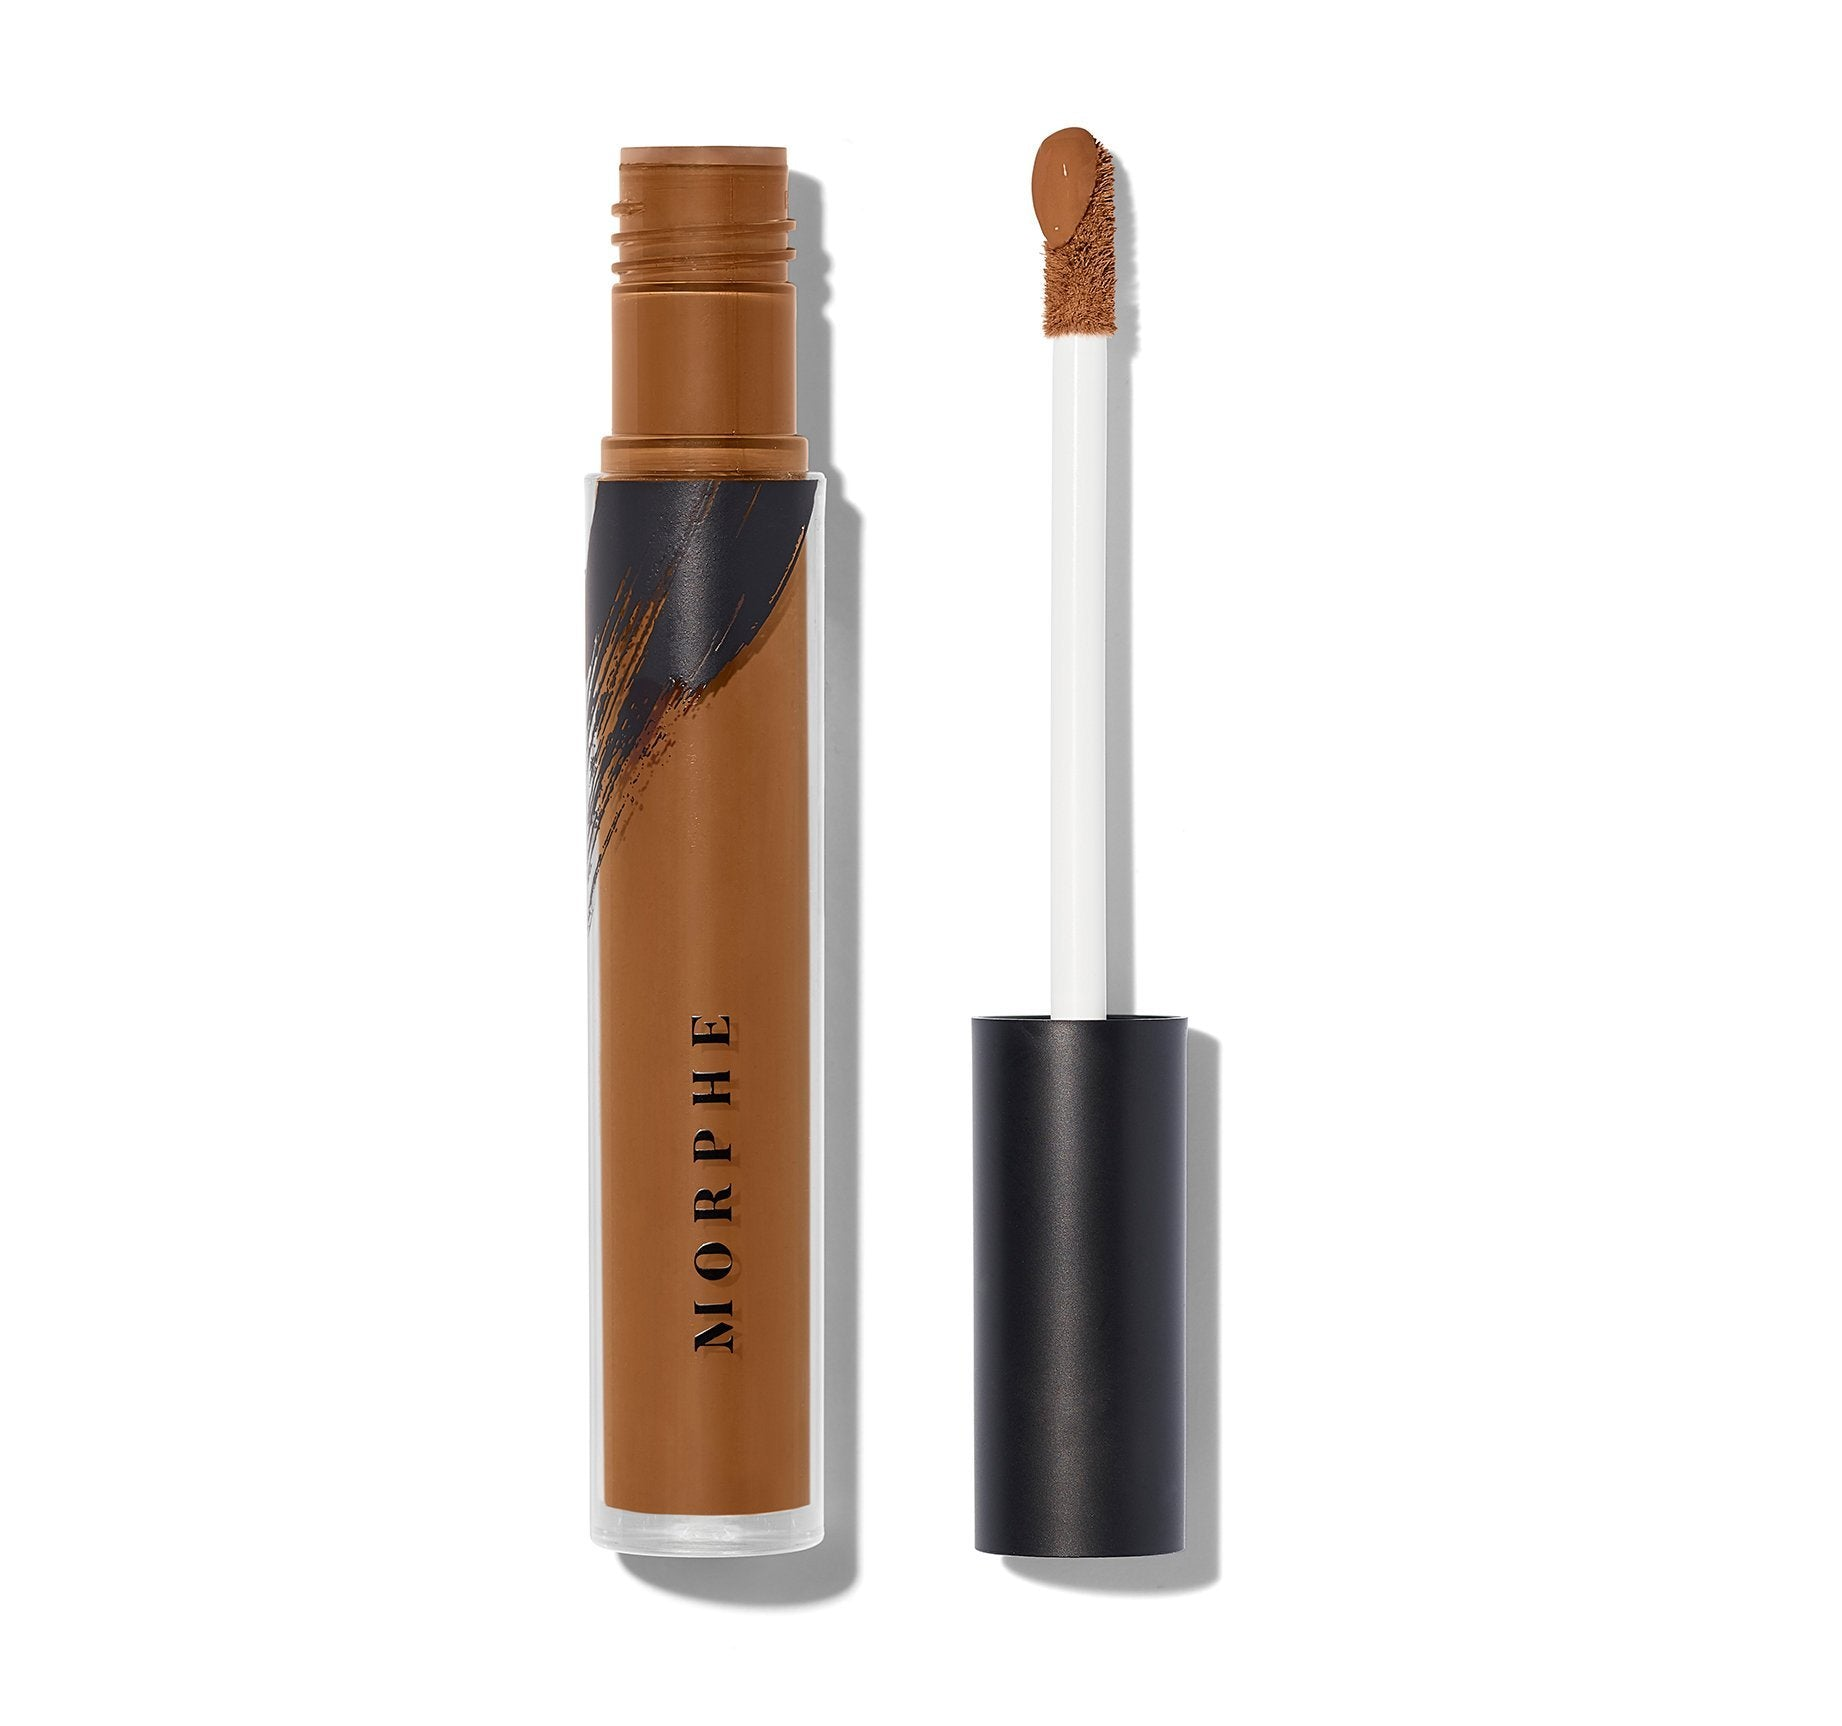 FLUIDITY FULL-COVERAGE CONCEALER - C4.45, view larger image